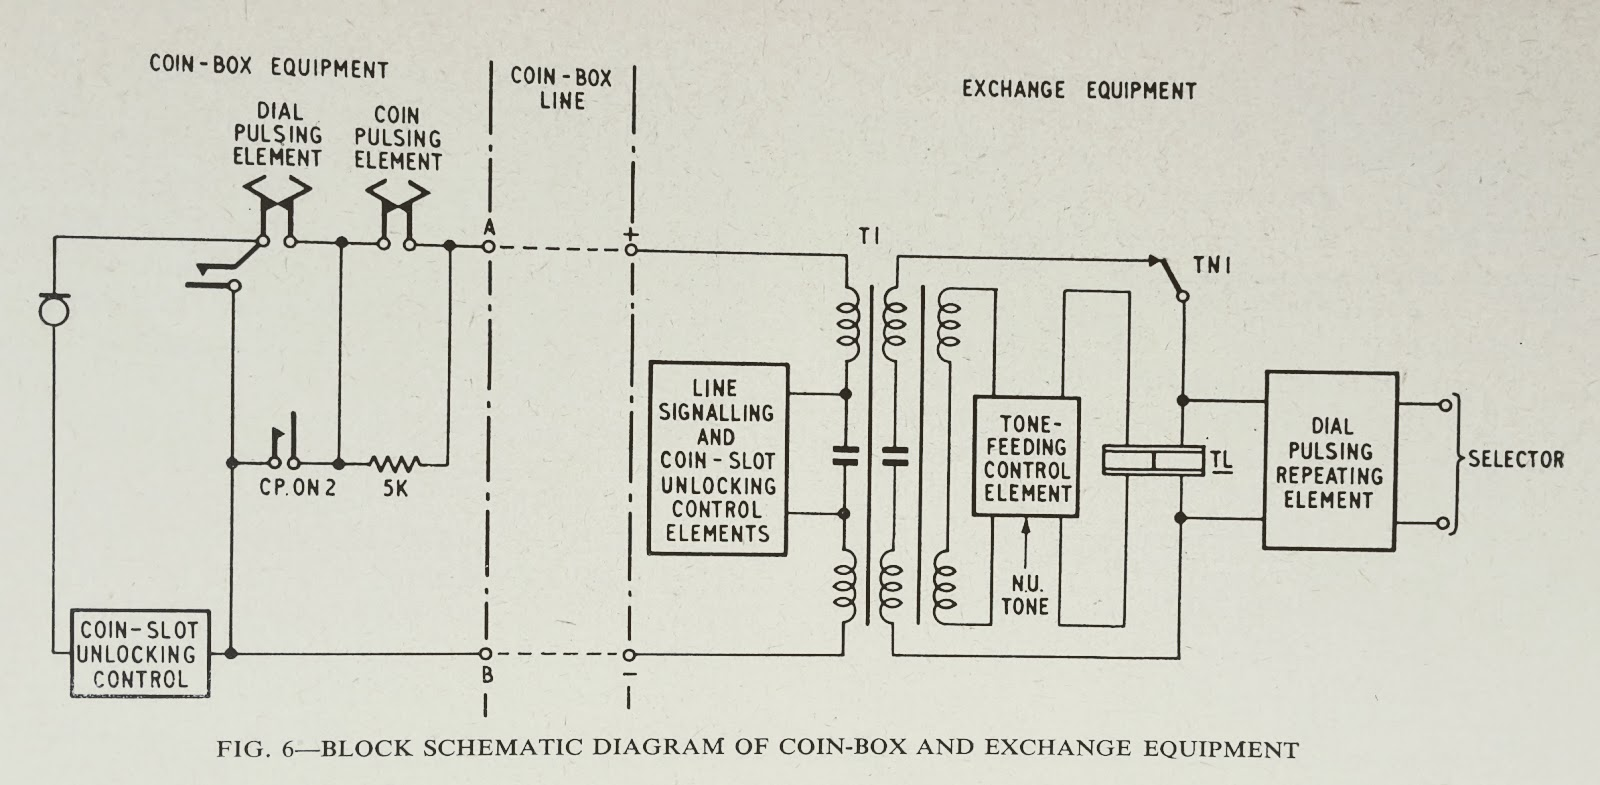 Block Schematic of coin box and exchange equipment